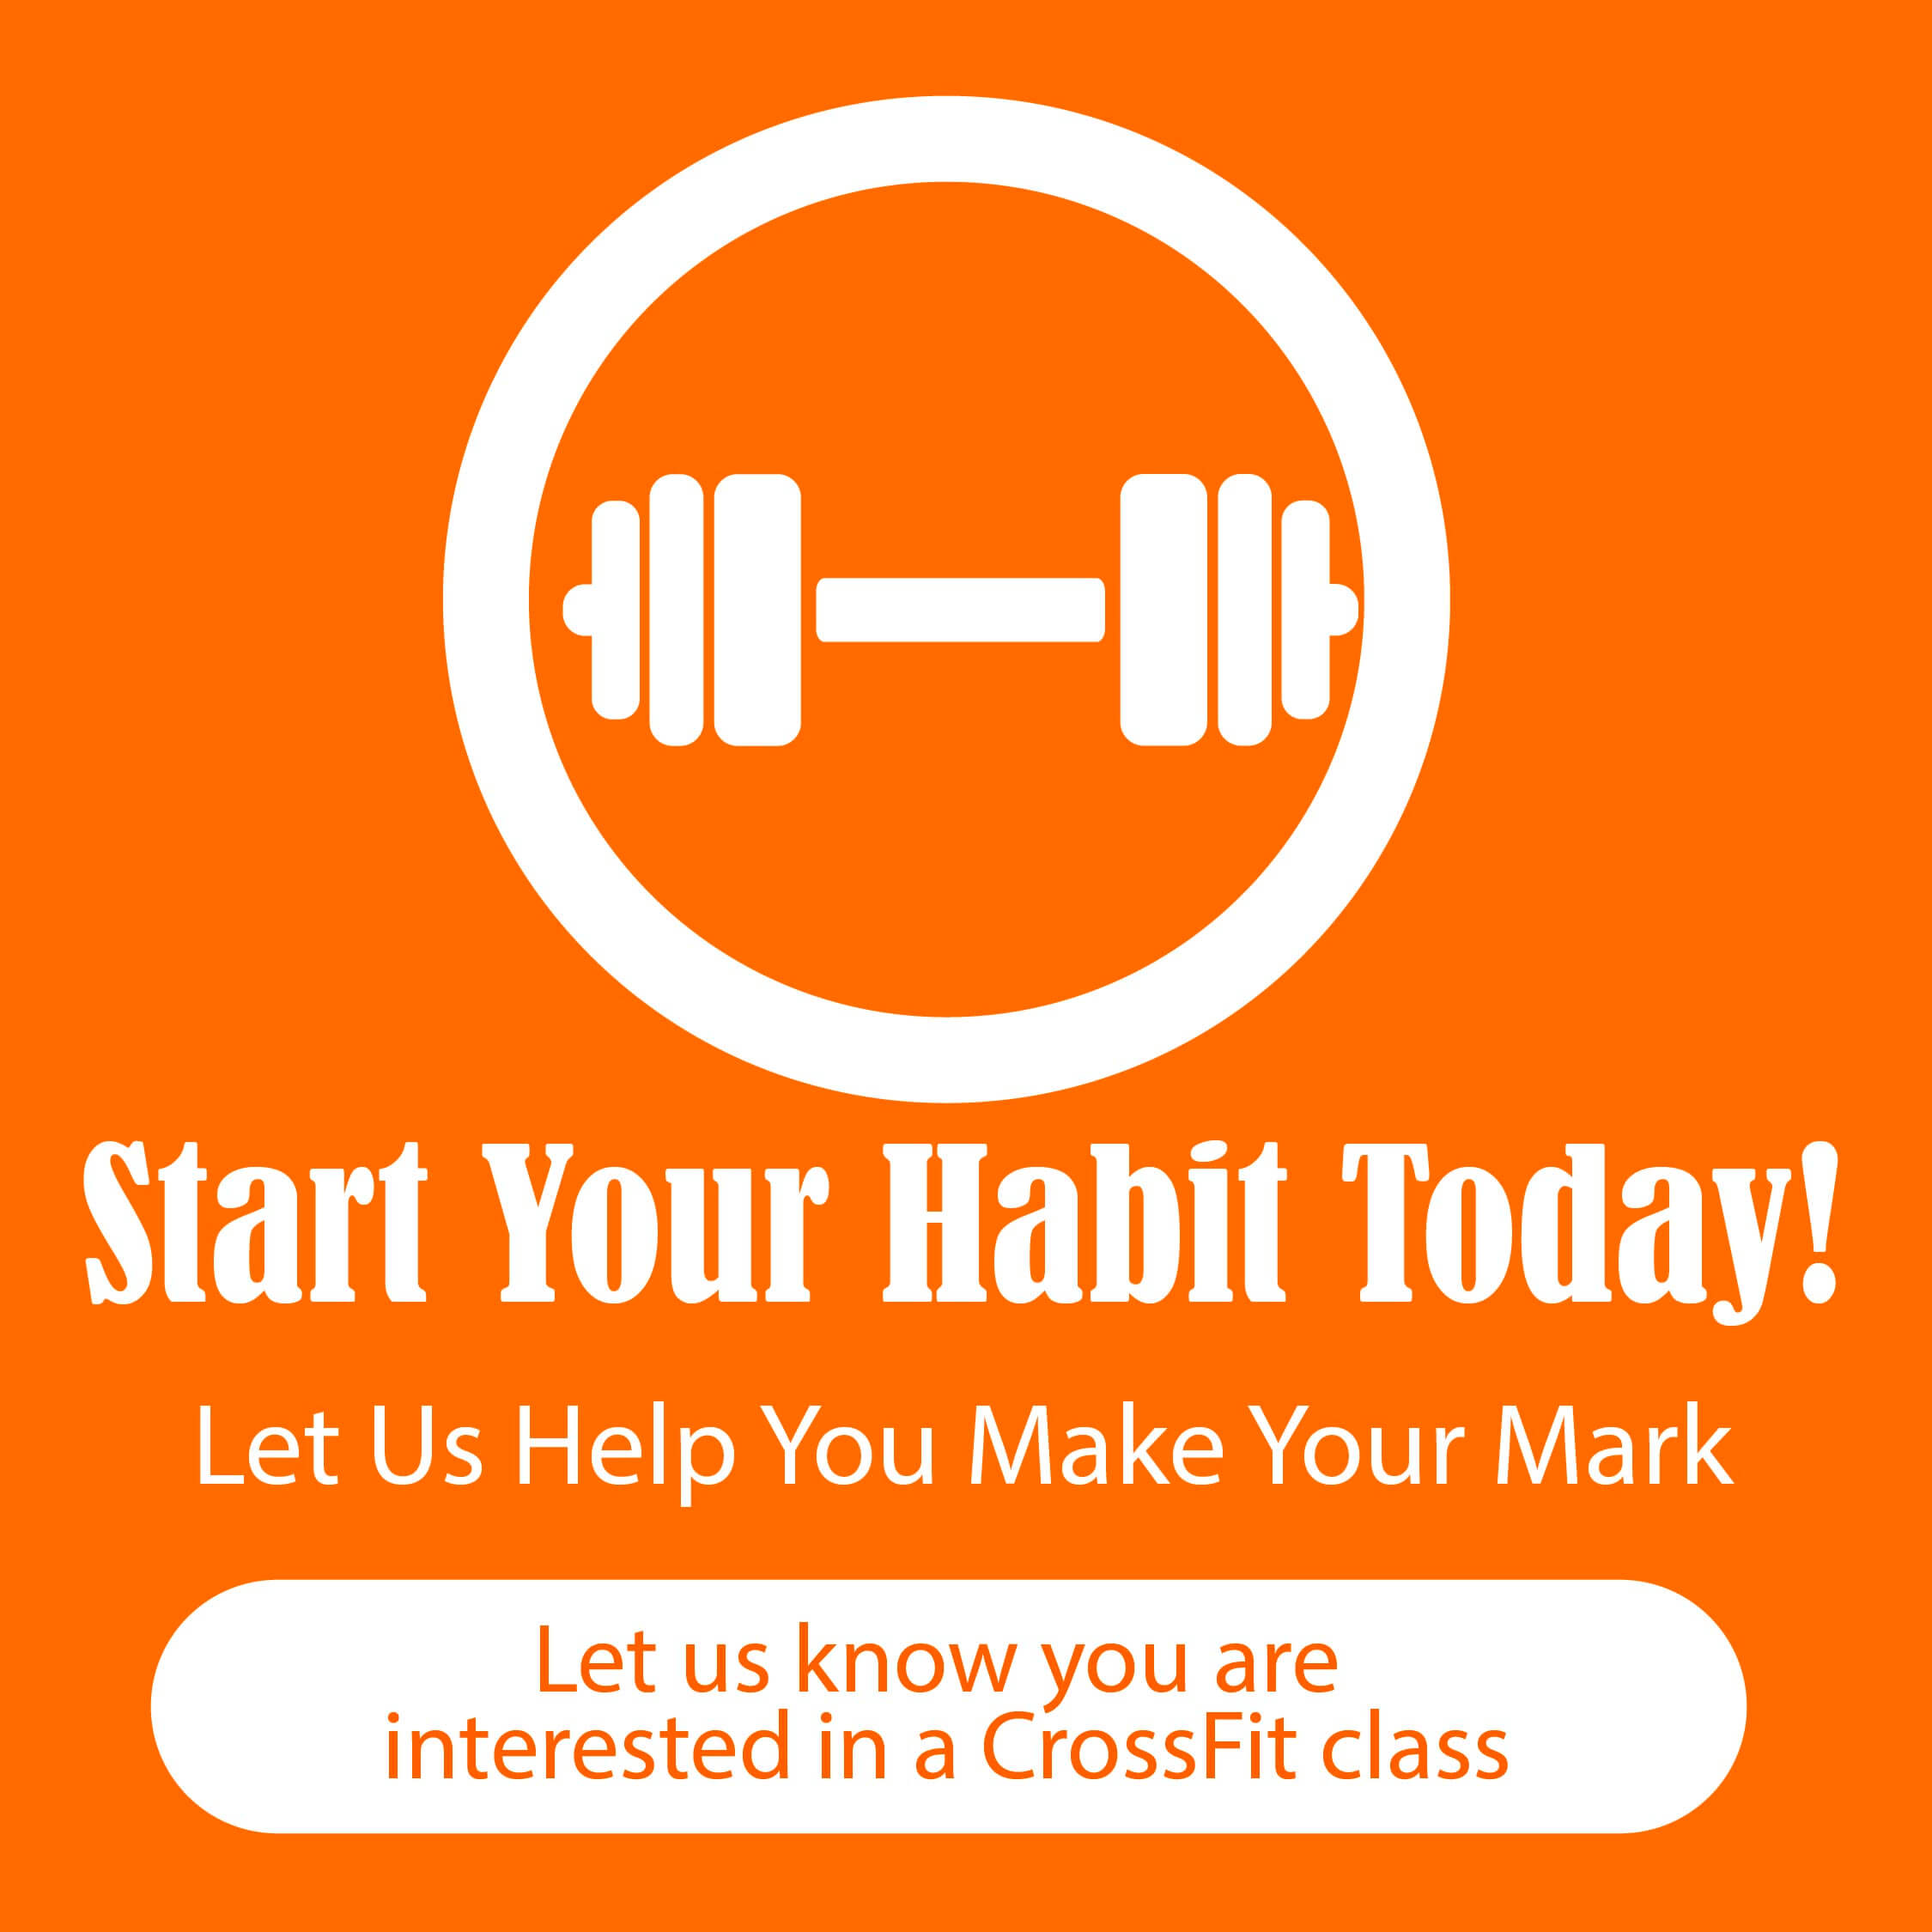 crossfit-class-interested